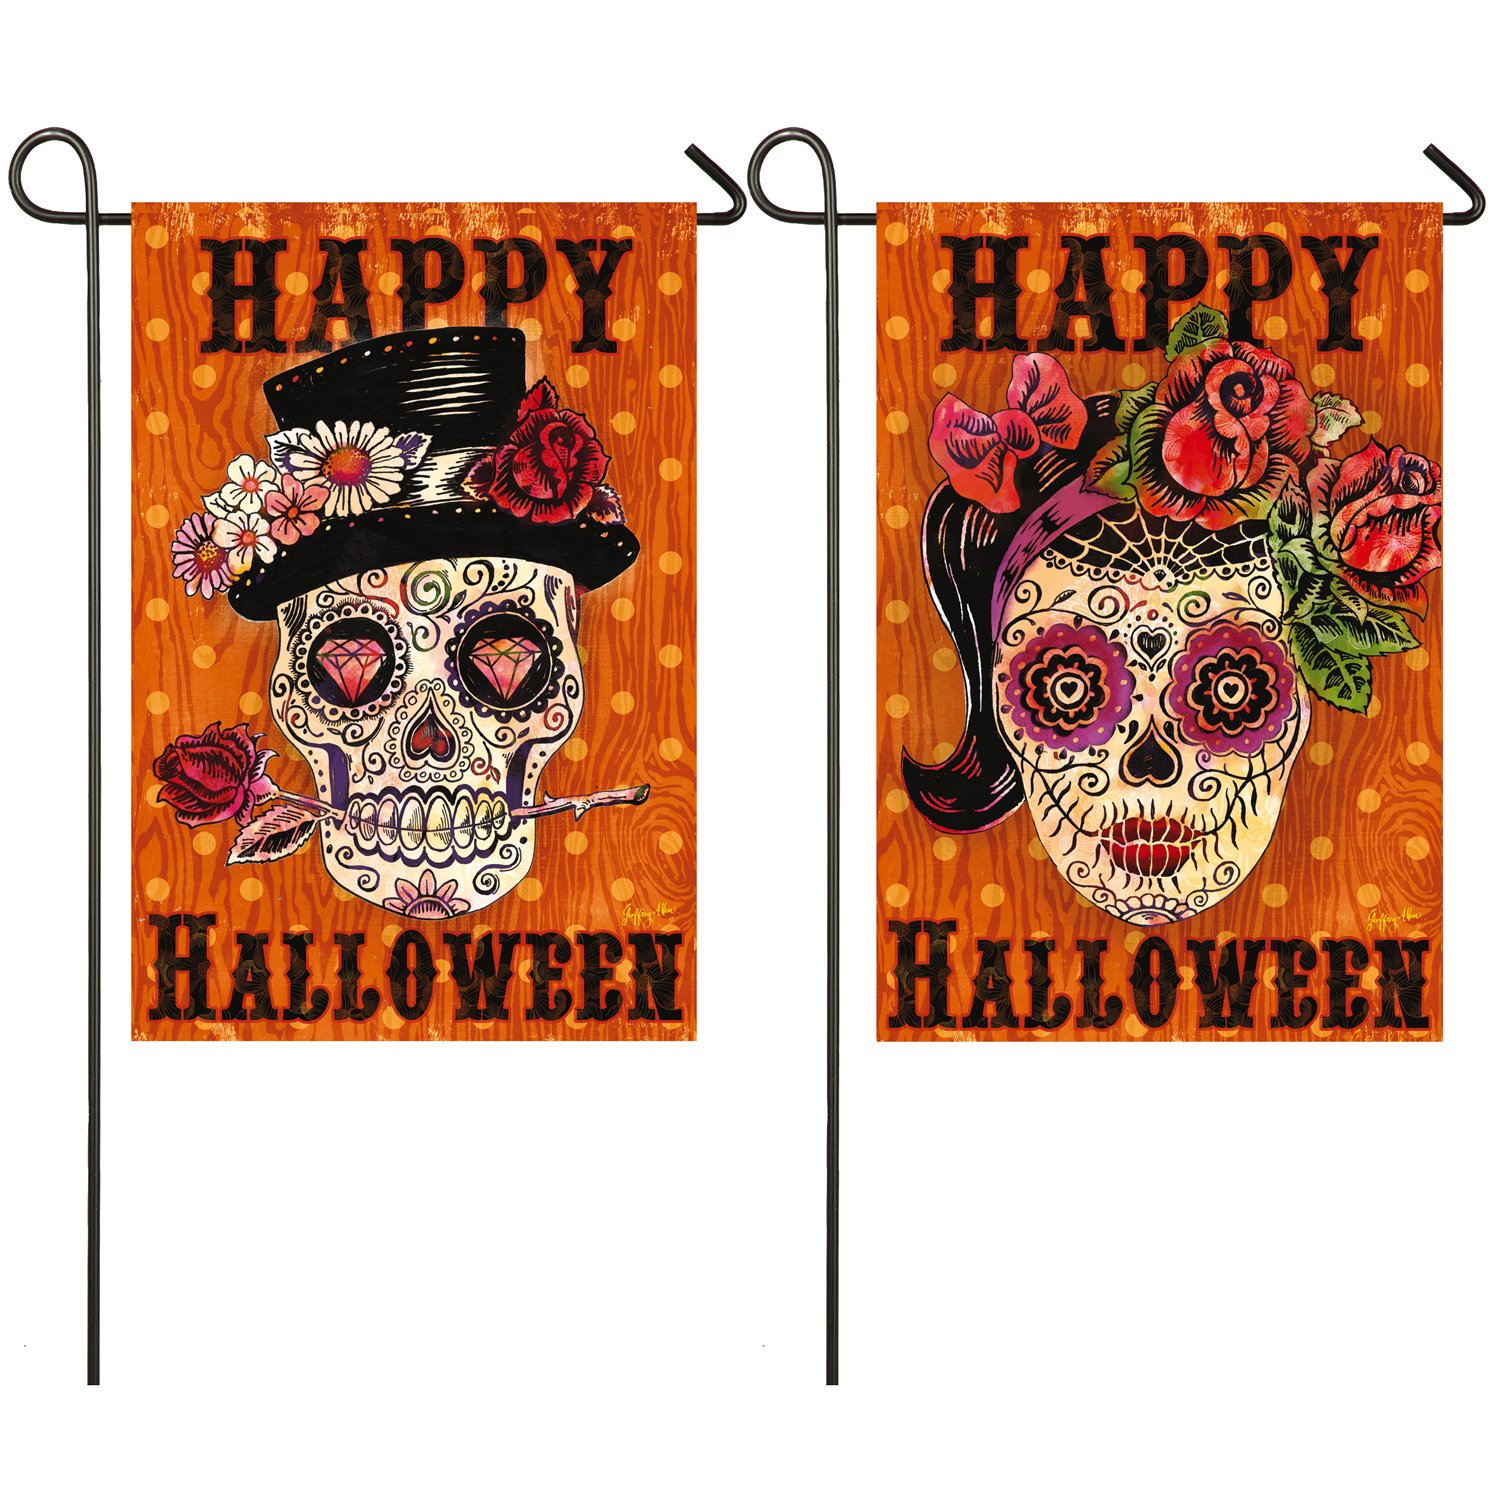 Evergreen Sugar Skulls, Day of the DeadOutdoor Safe Double-Sided Suede Garden Flag, 12.5 x 18 inches